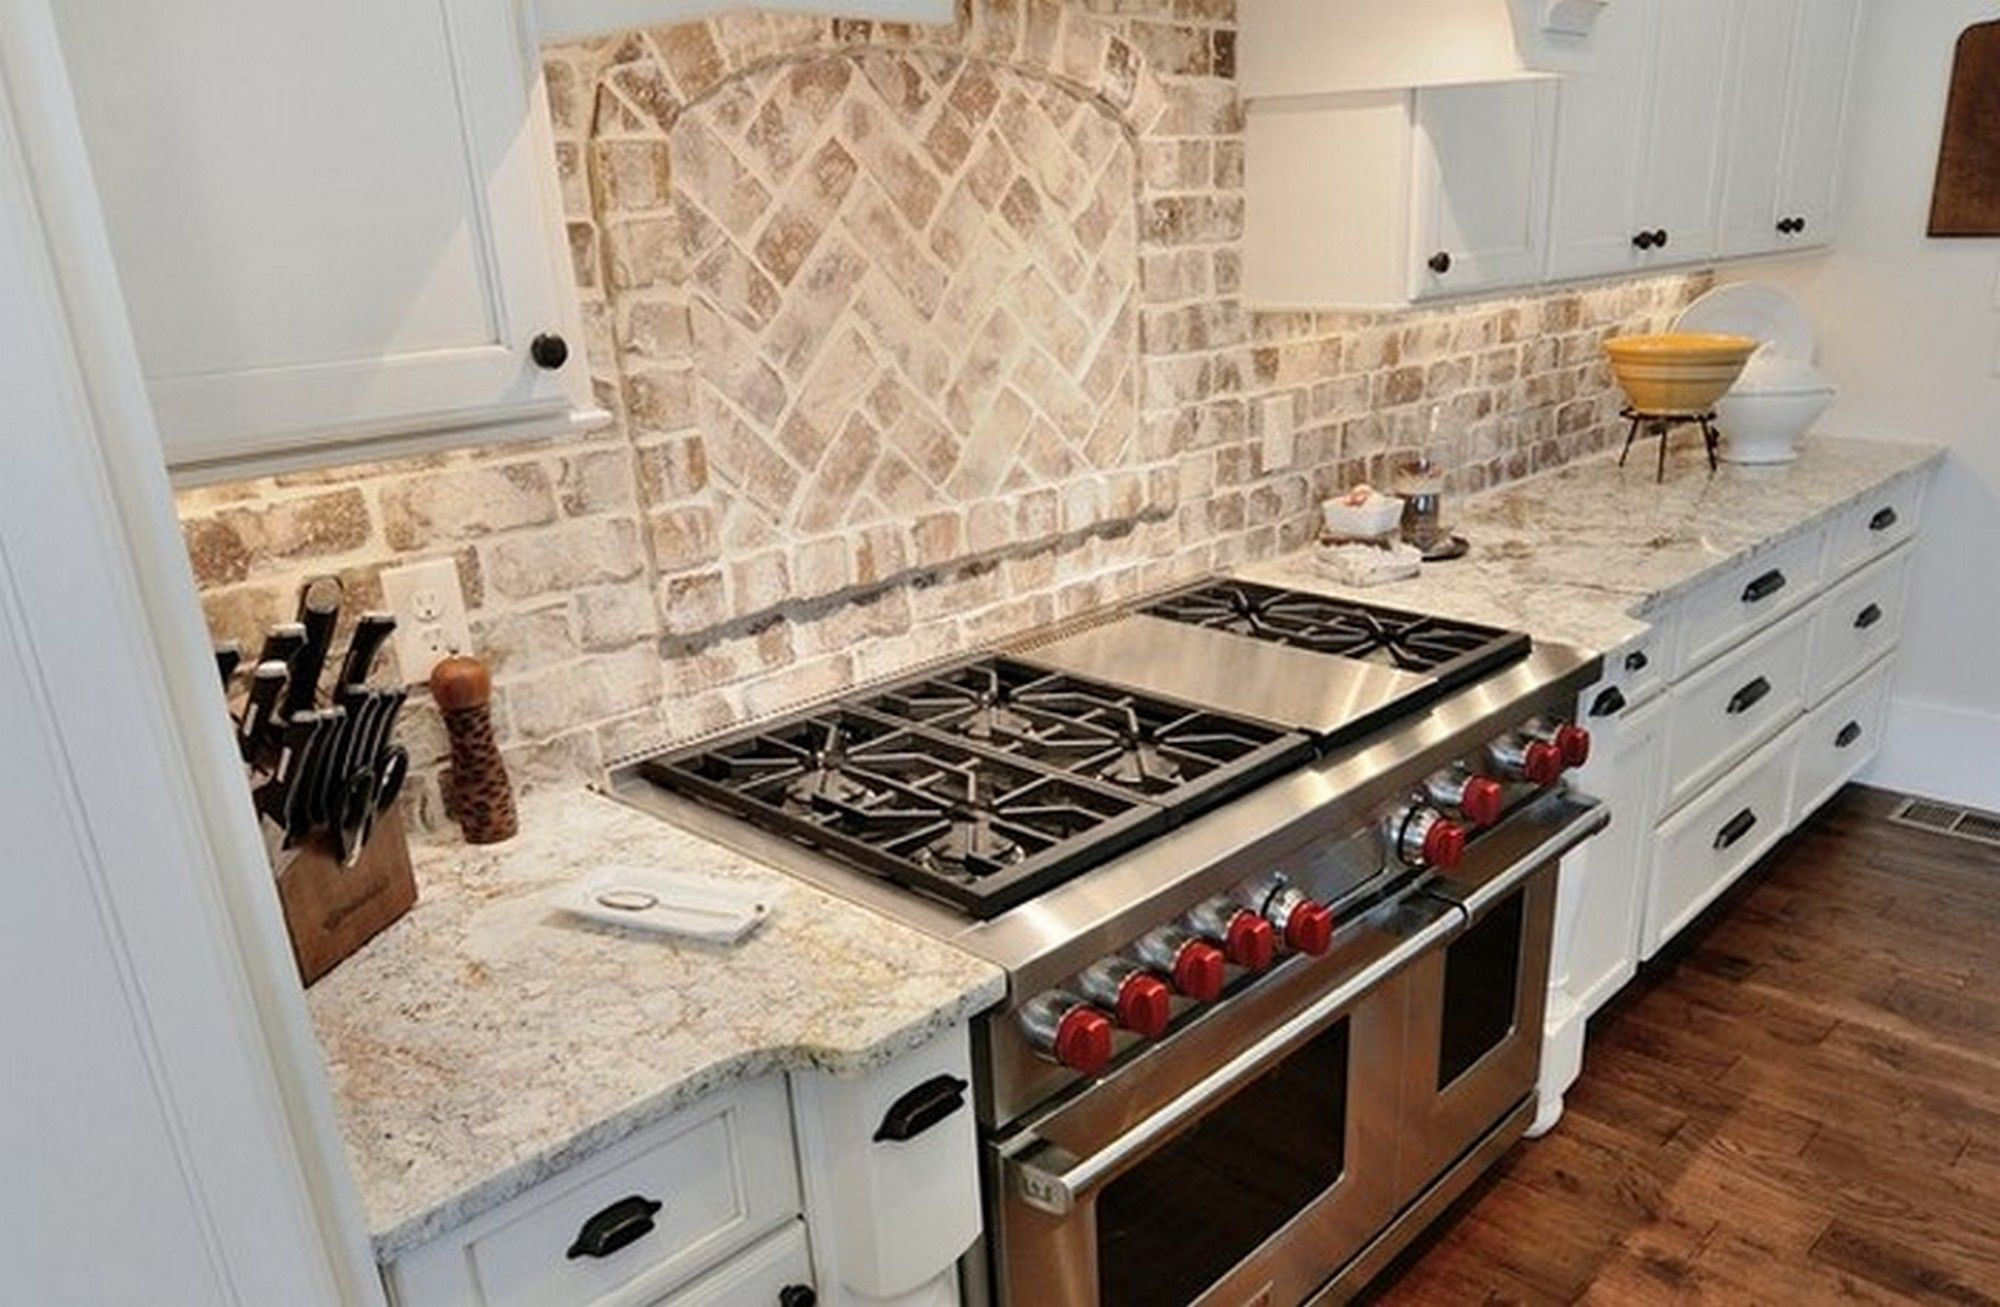 Thin Brick Tiles Used As Backsplash We Would Recommend Our Snohomish Color Mix Or 100 Natural C Brick Backsplash Kitchen White Brick Backsplash Brick Kitchen